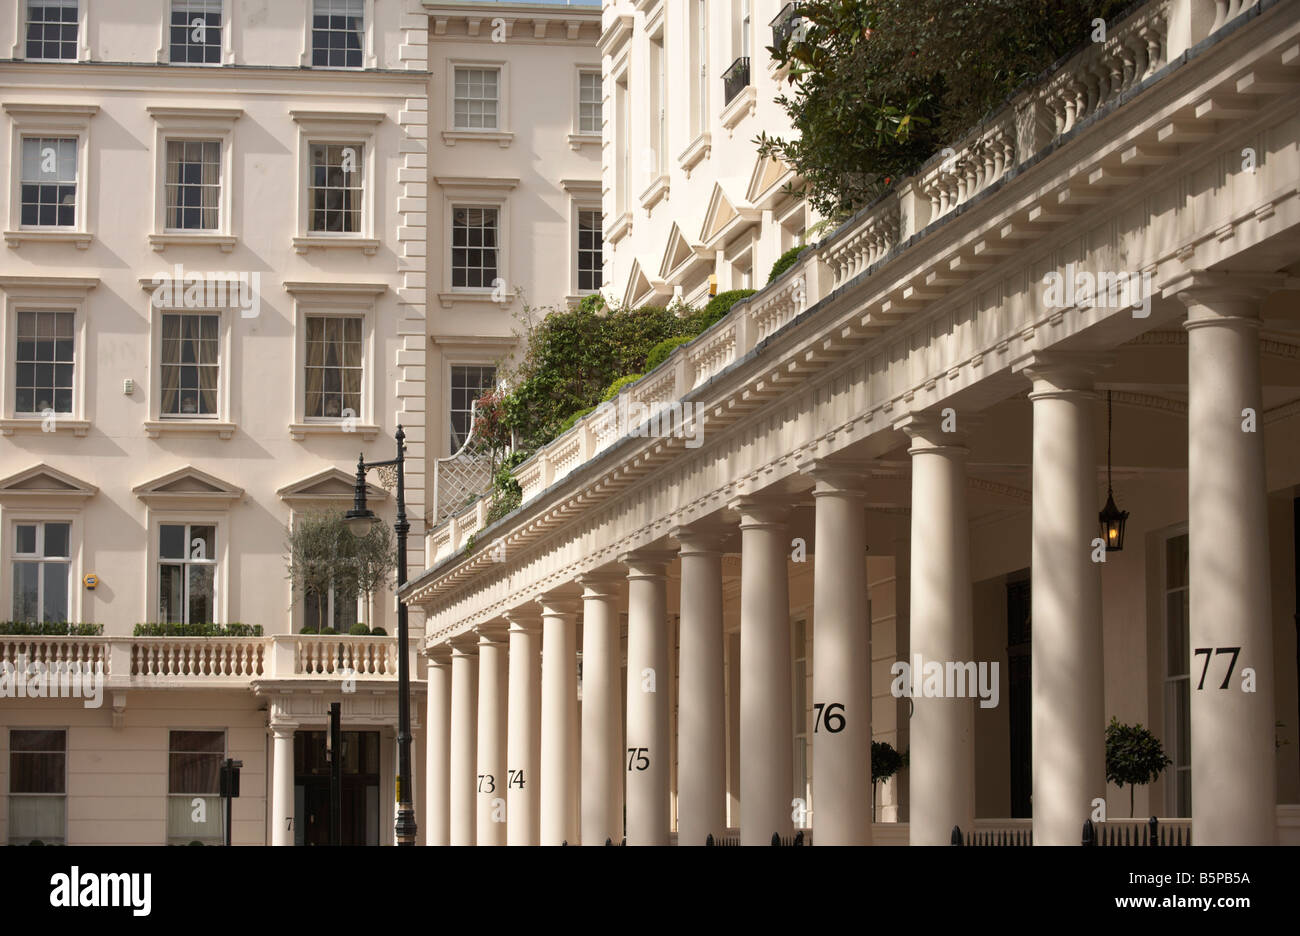 immaculate-frontage-with-columns-and-pil